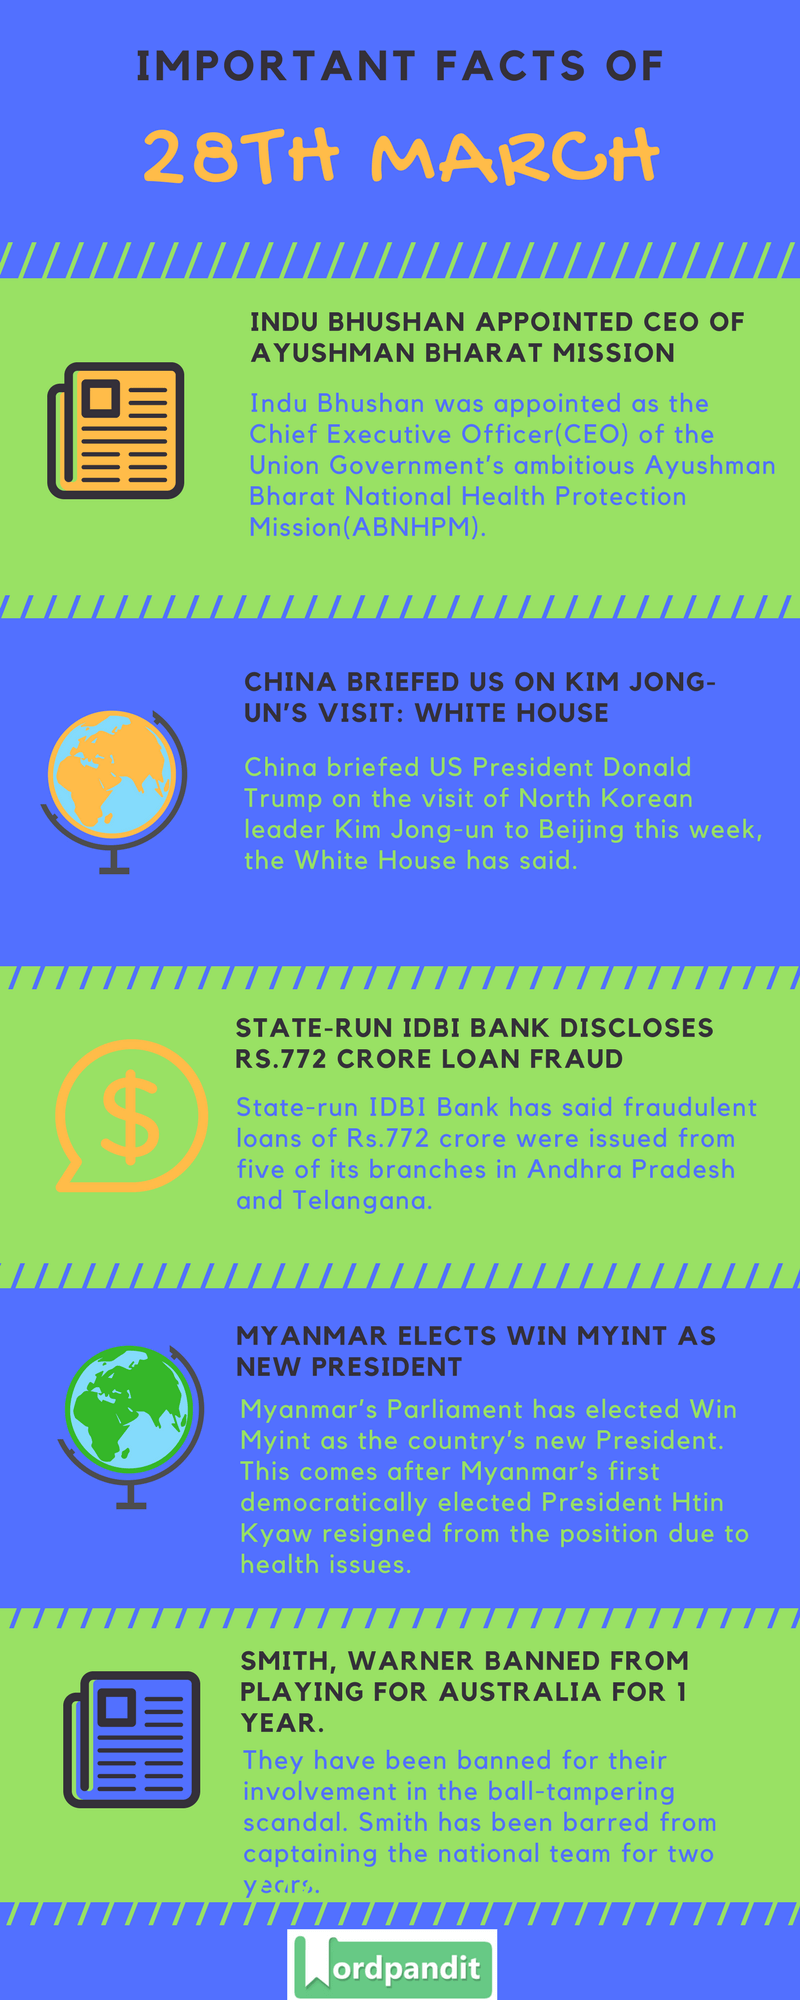 Daily Current Affairs 28 March 2018 Current Affairs Quiz March 28 2018 Current Affairs Infographic